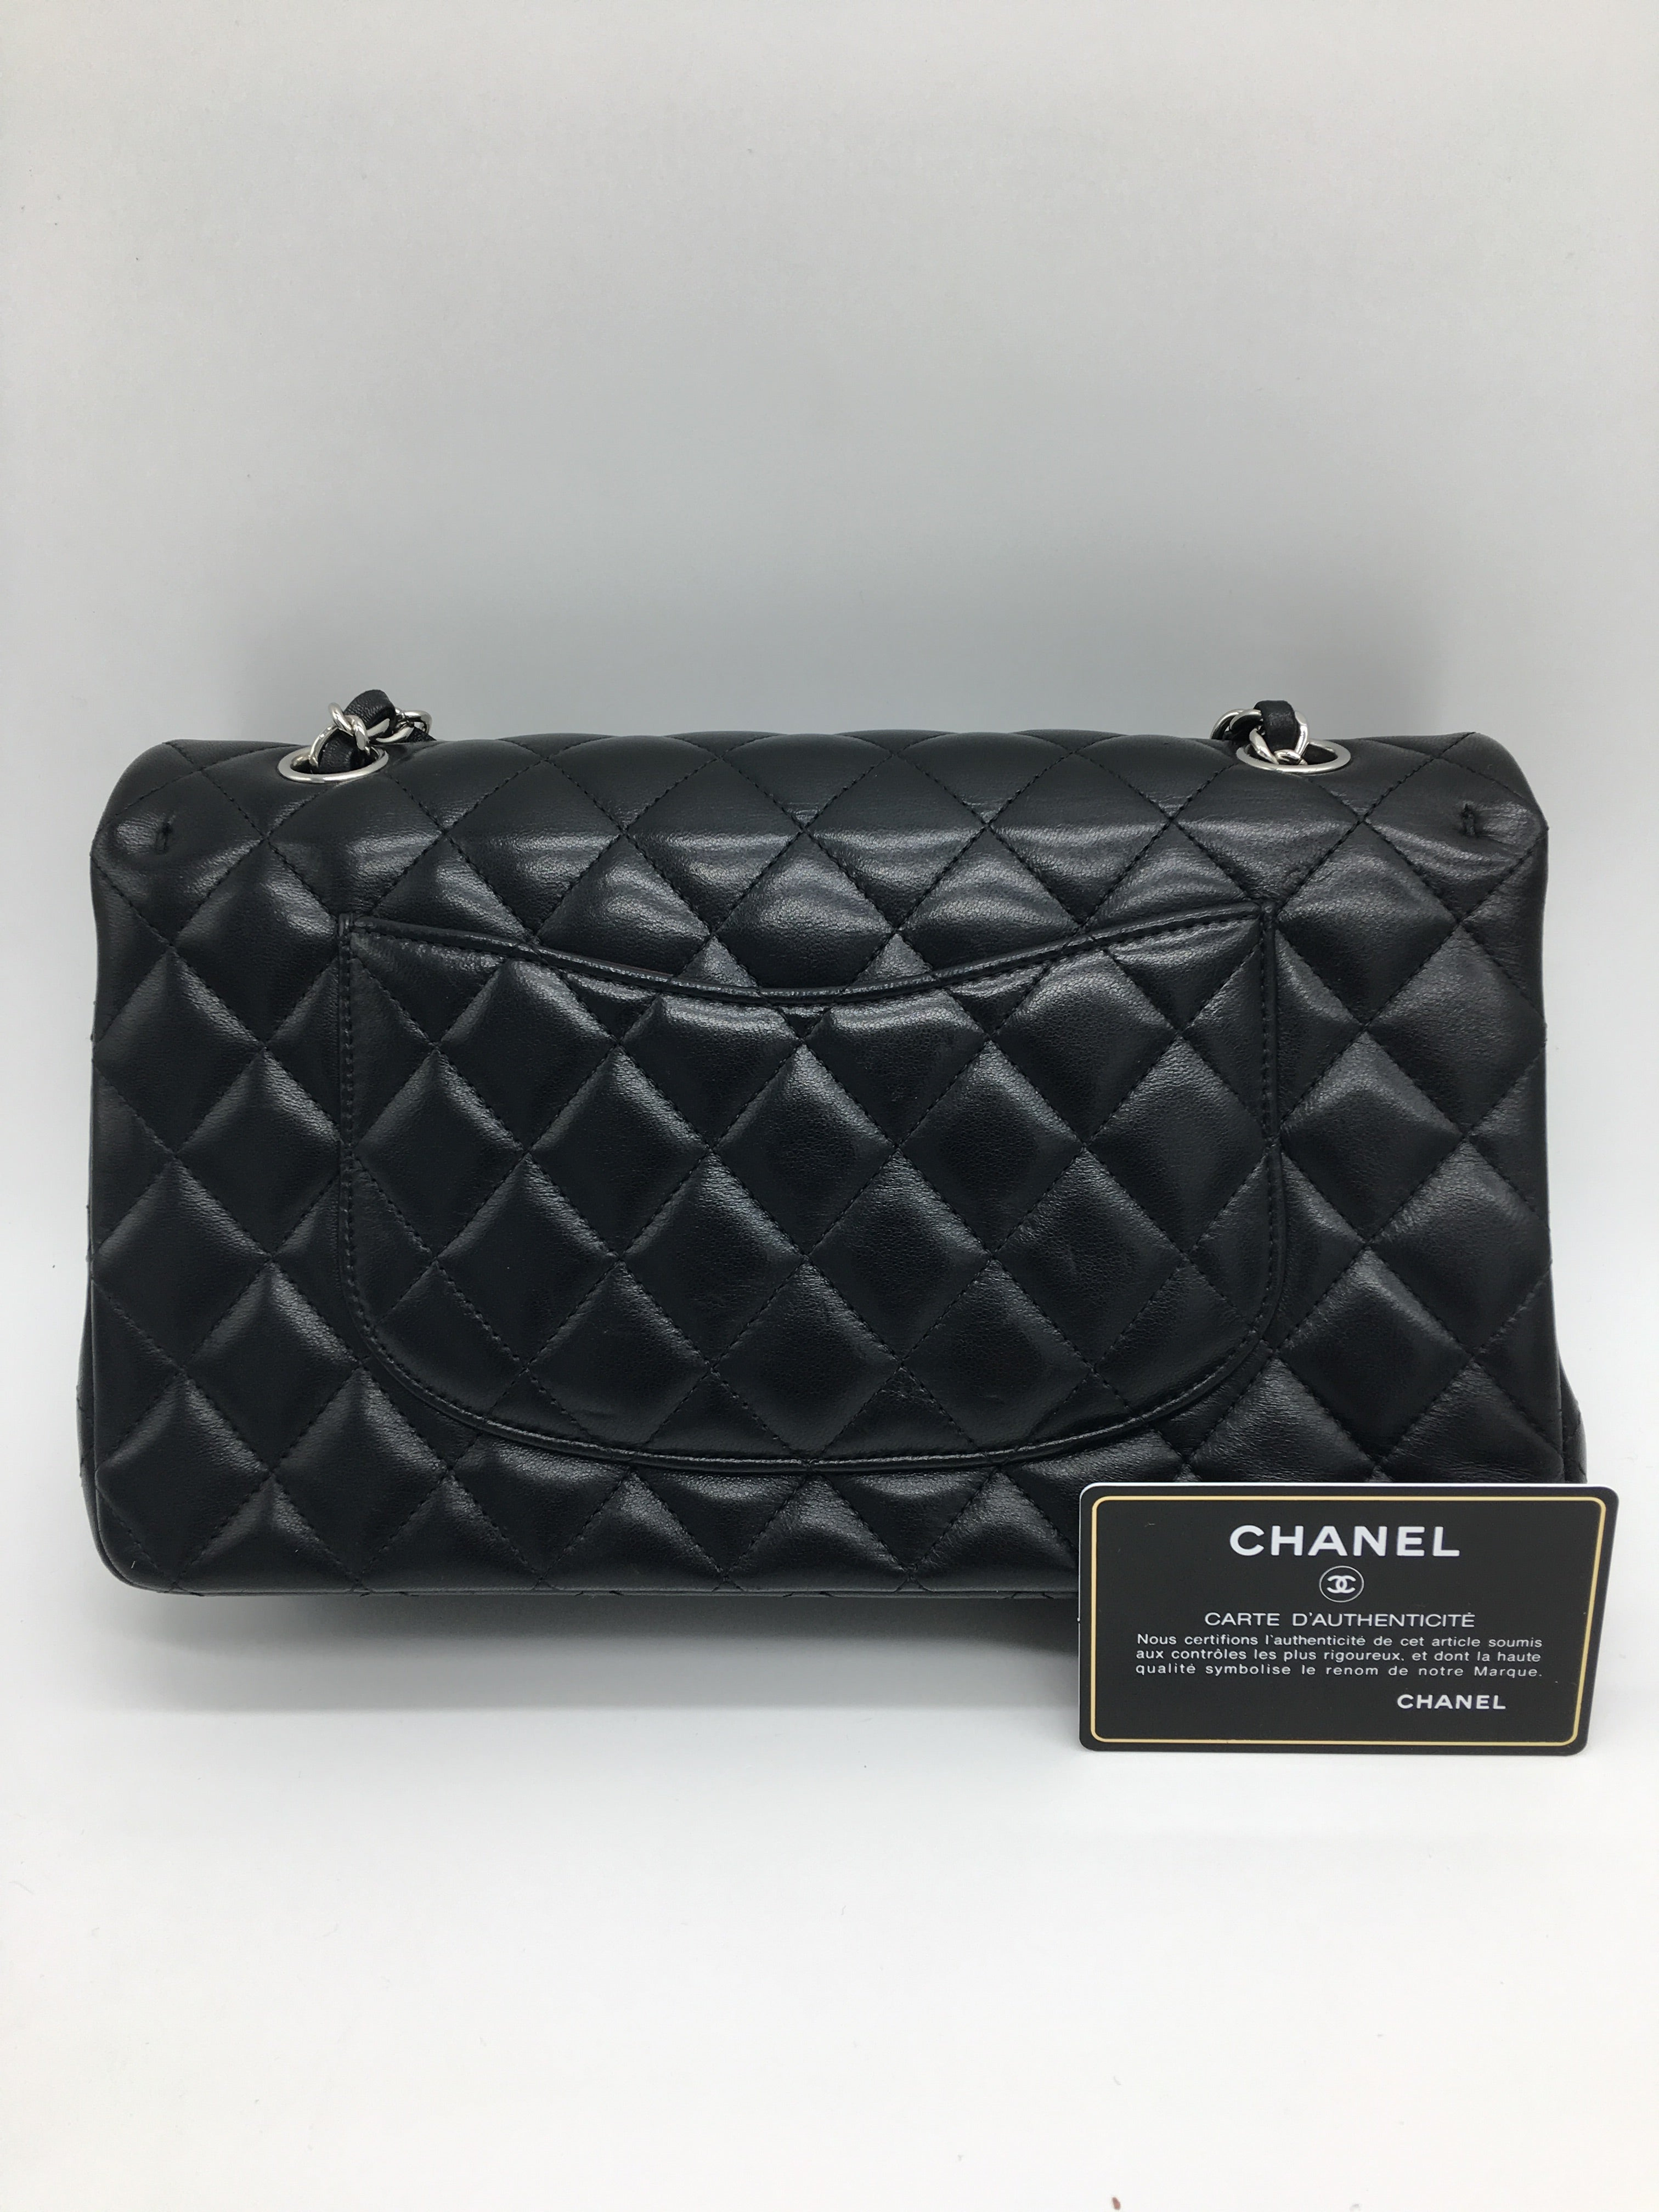 71dc7b035ad6 Chanel Flap Bag medium in Black with silver For Sale at 1stdibs